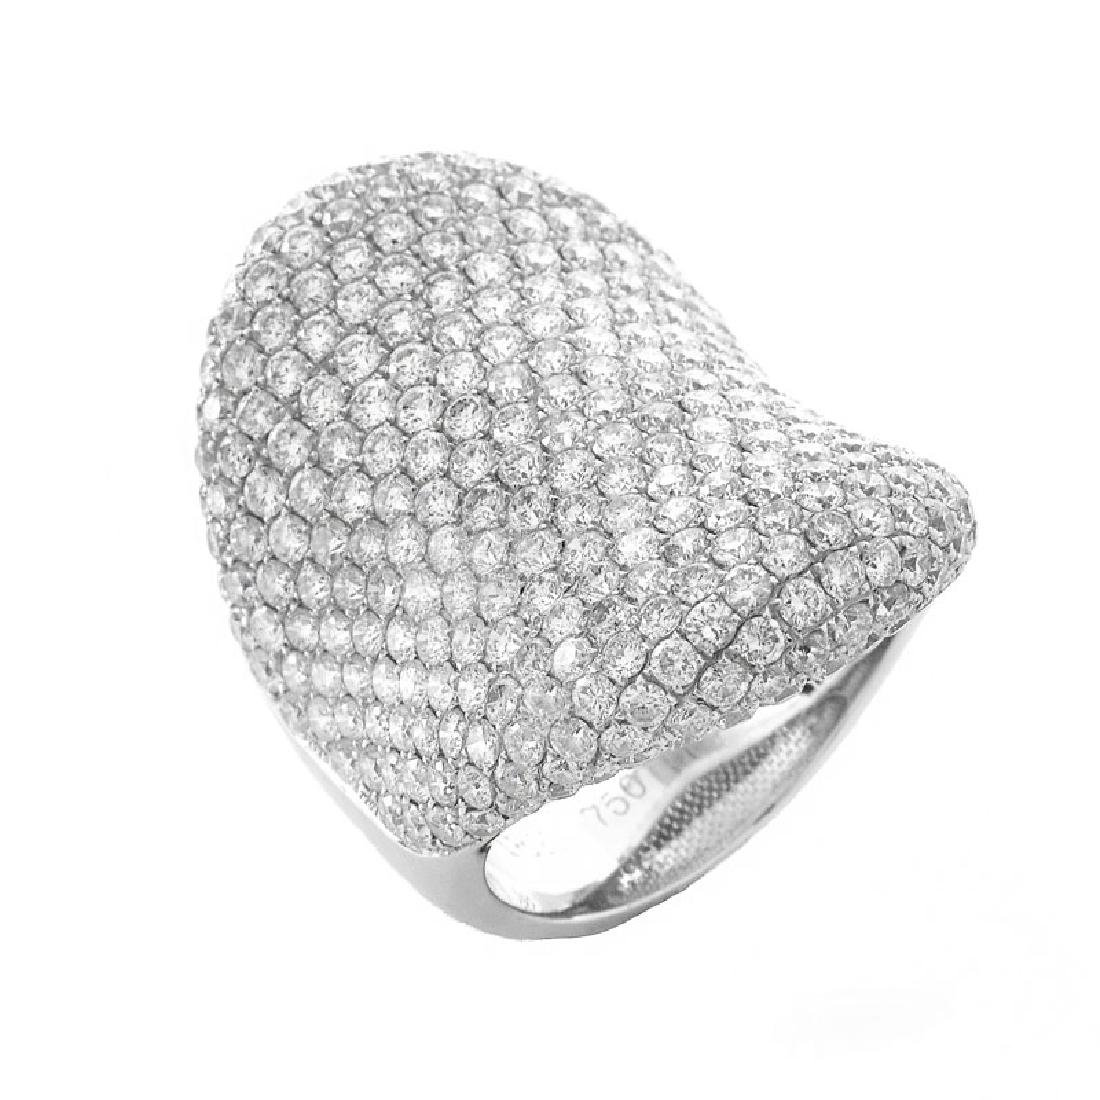 Contemporary Approx. 6.20 Carat Pave Set Round